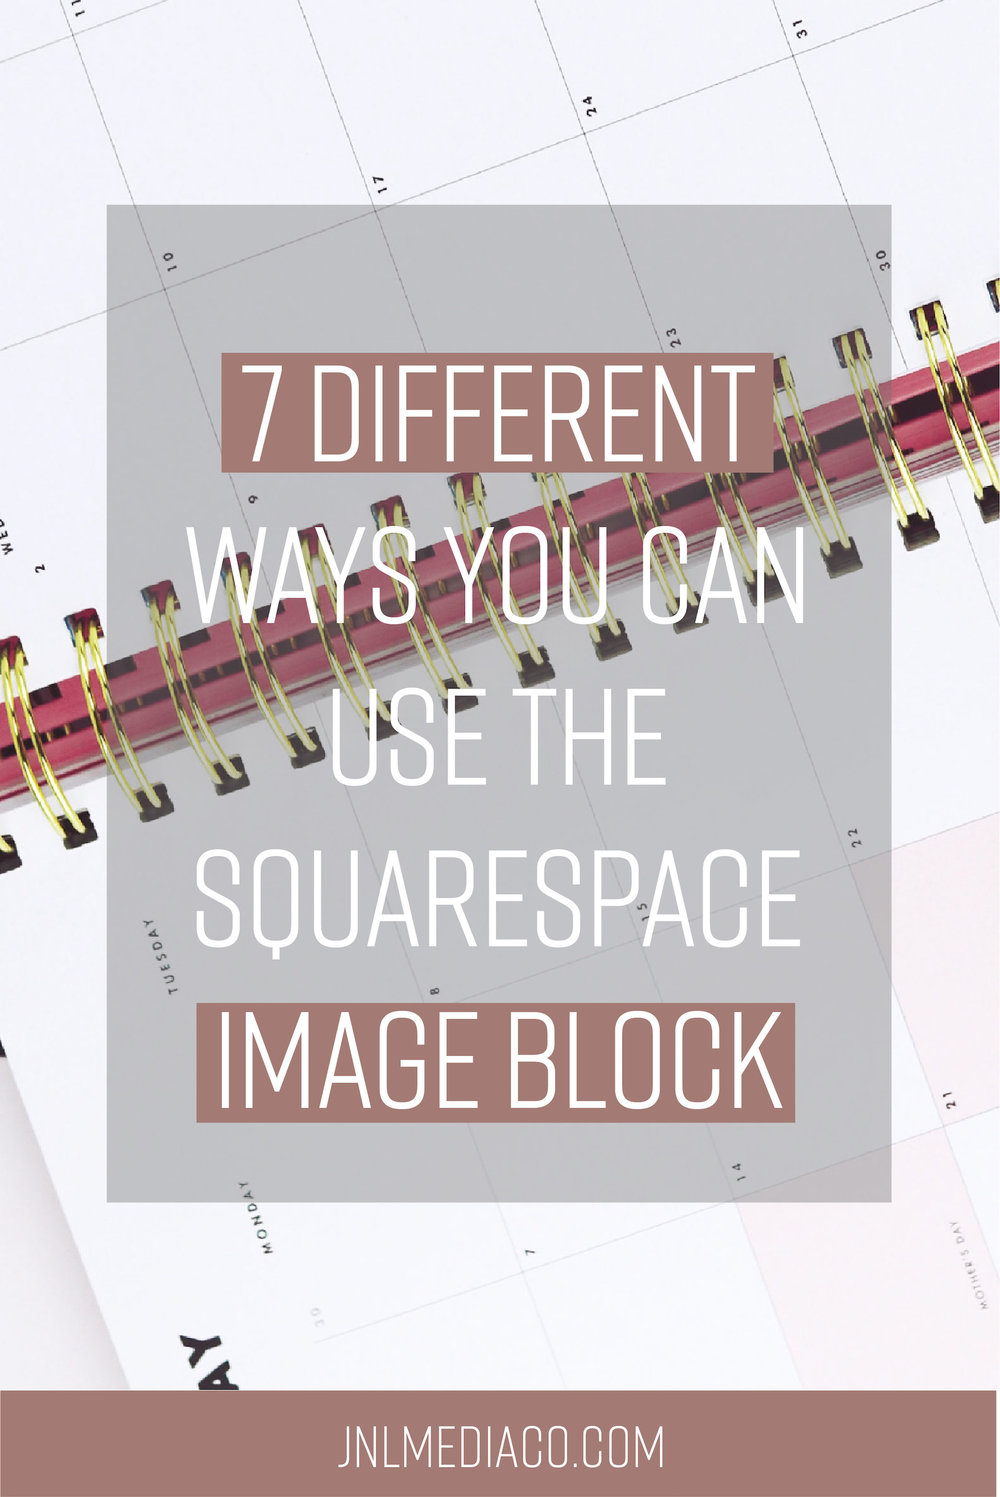 If you have a website then there's a 99.9999% chance you will be using images on your site. There's a couple of ways you can include images on your site with Squarespace but I'll be focusing on breaking down the image block for you.